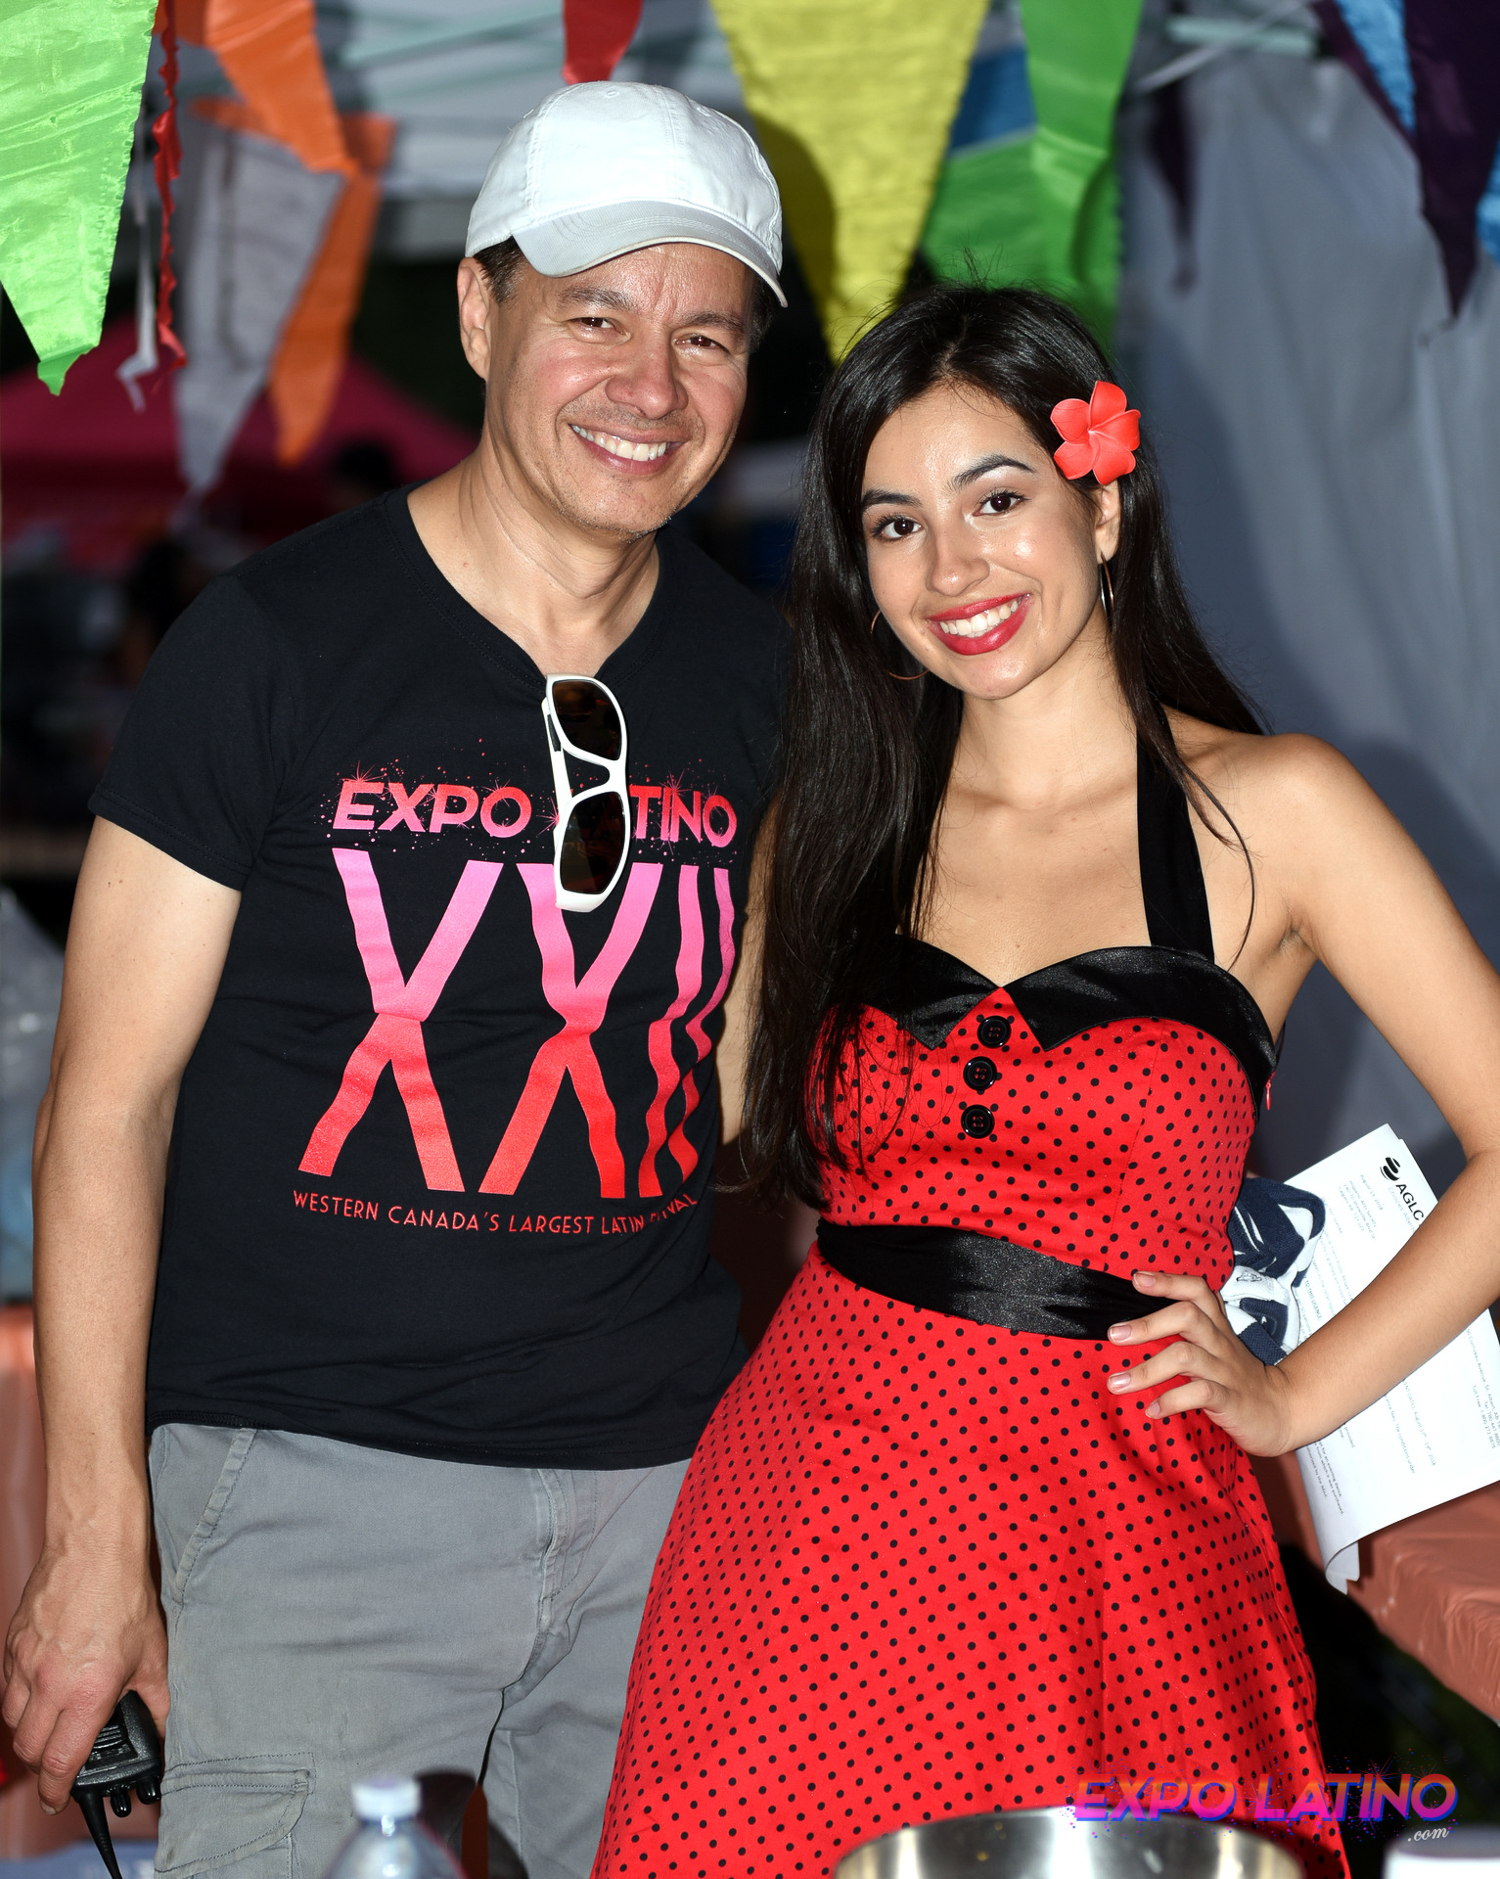 Doug-Wong-Photography-Expo-Latino-2018-4